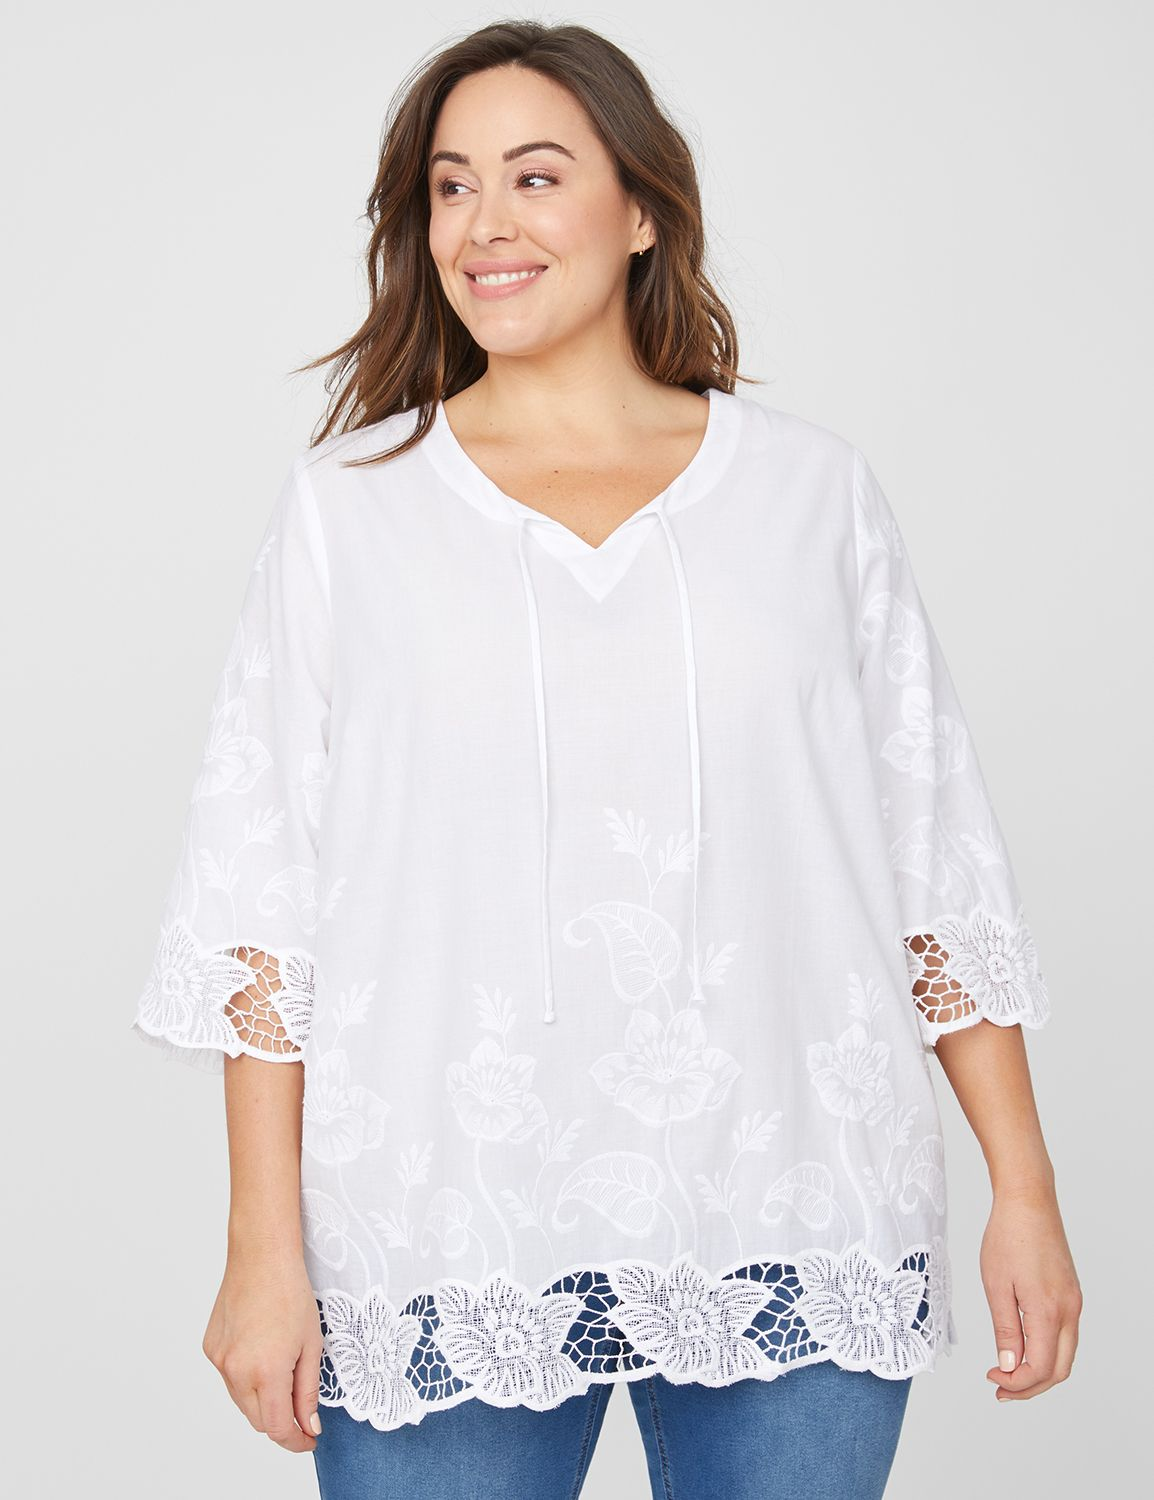 Springs Resort Peasant Top 1091212 Nuance Embroidered Peasant MP-300105870